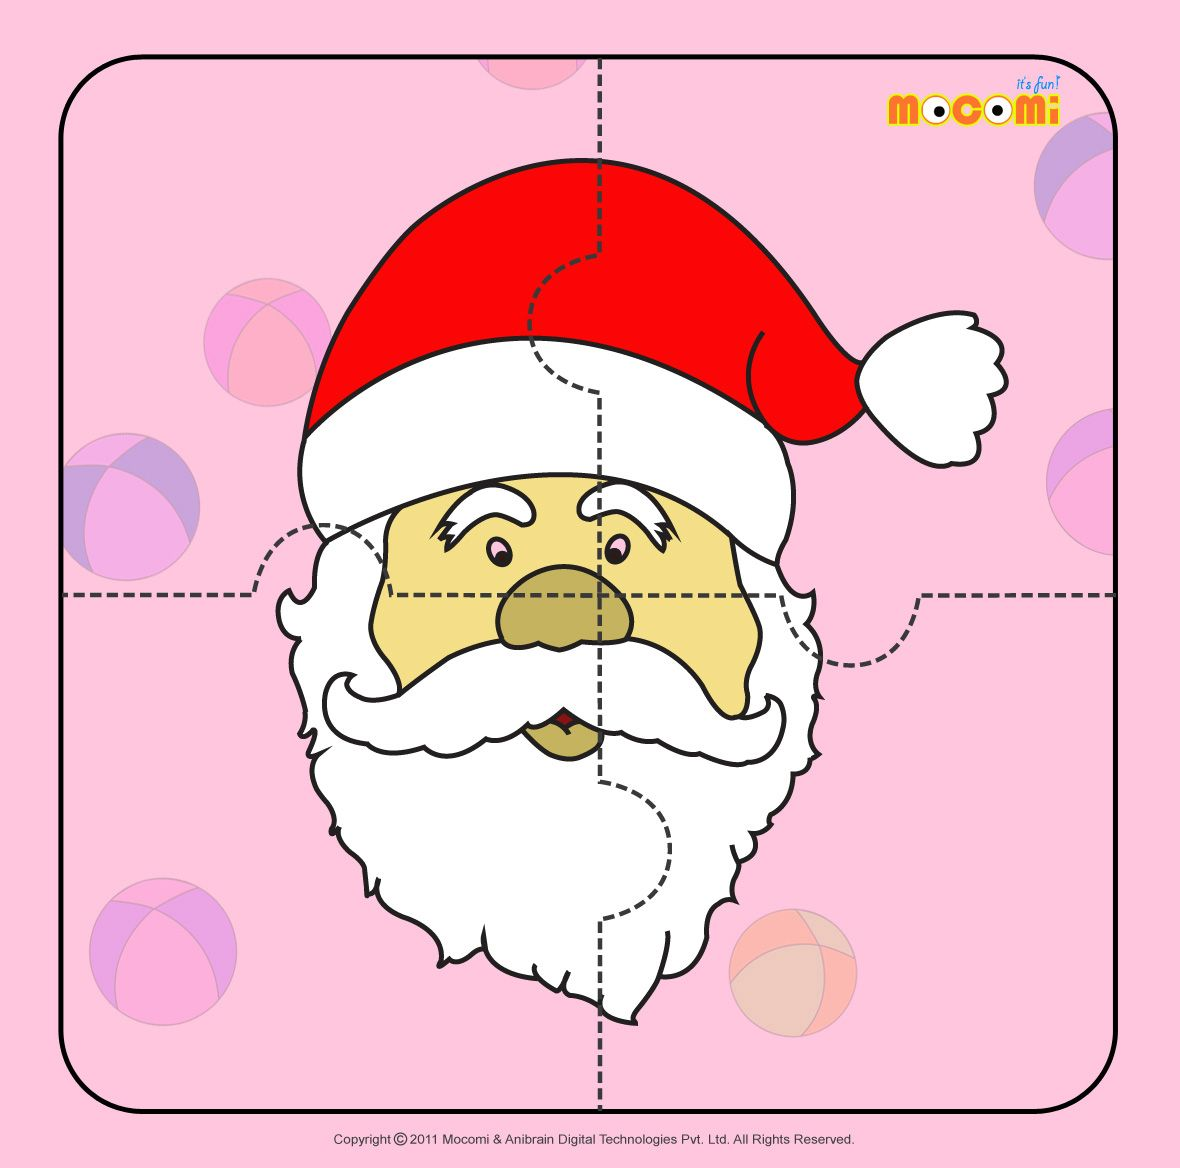 santa claus 2 download this free puzzle for kids in pre school - Santa Claus For Kids